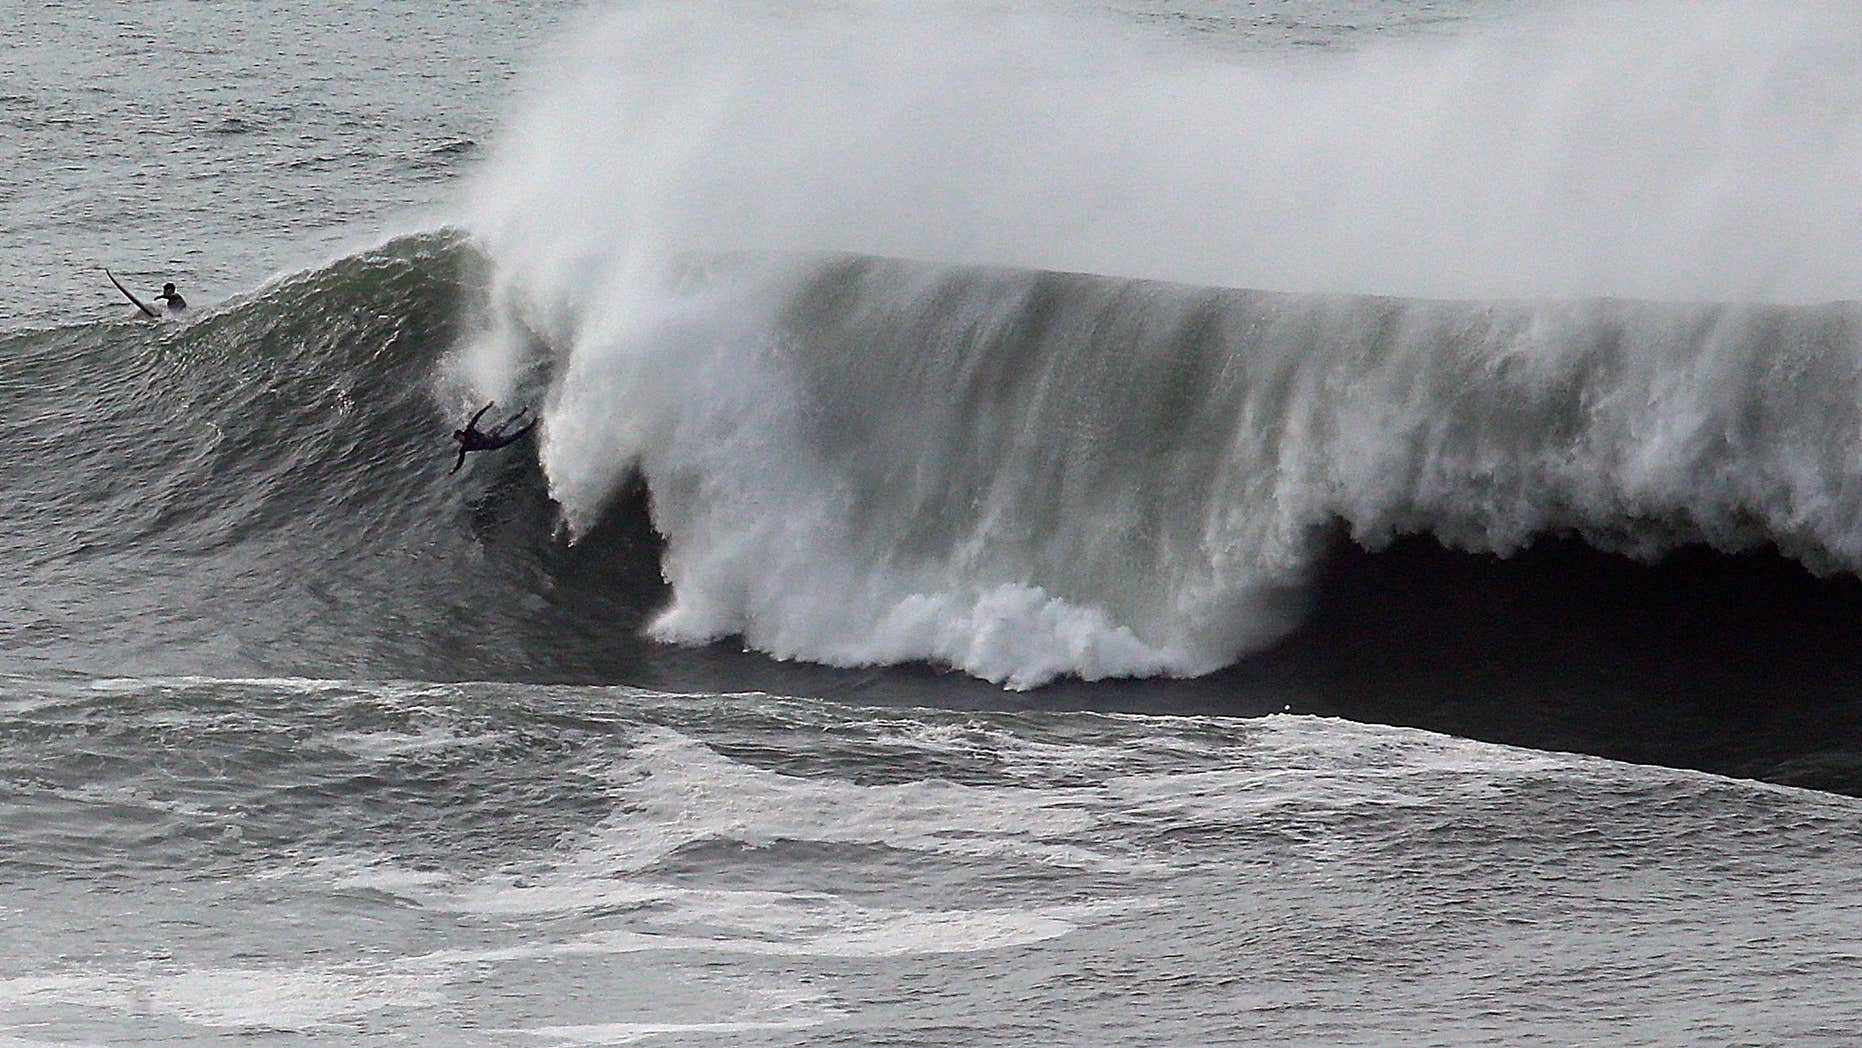 Jan. 8, 2016: A surfer wipes out under a large wave at Mavericks in Half Moon Bay, Calif.